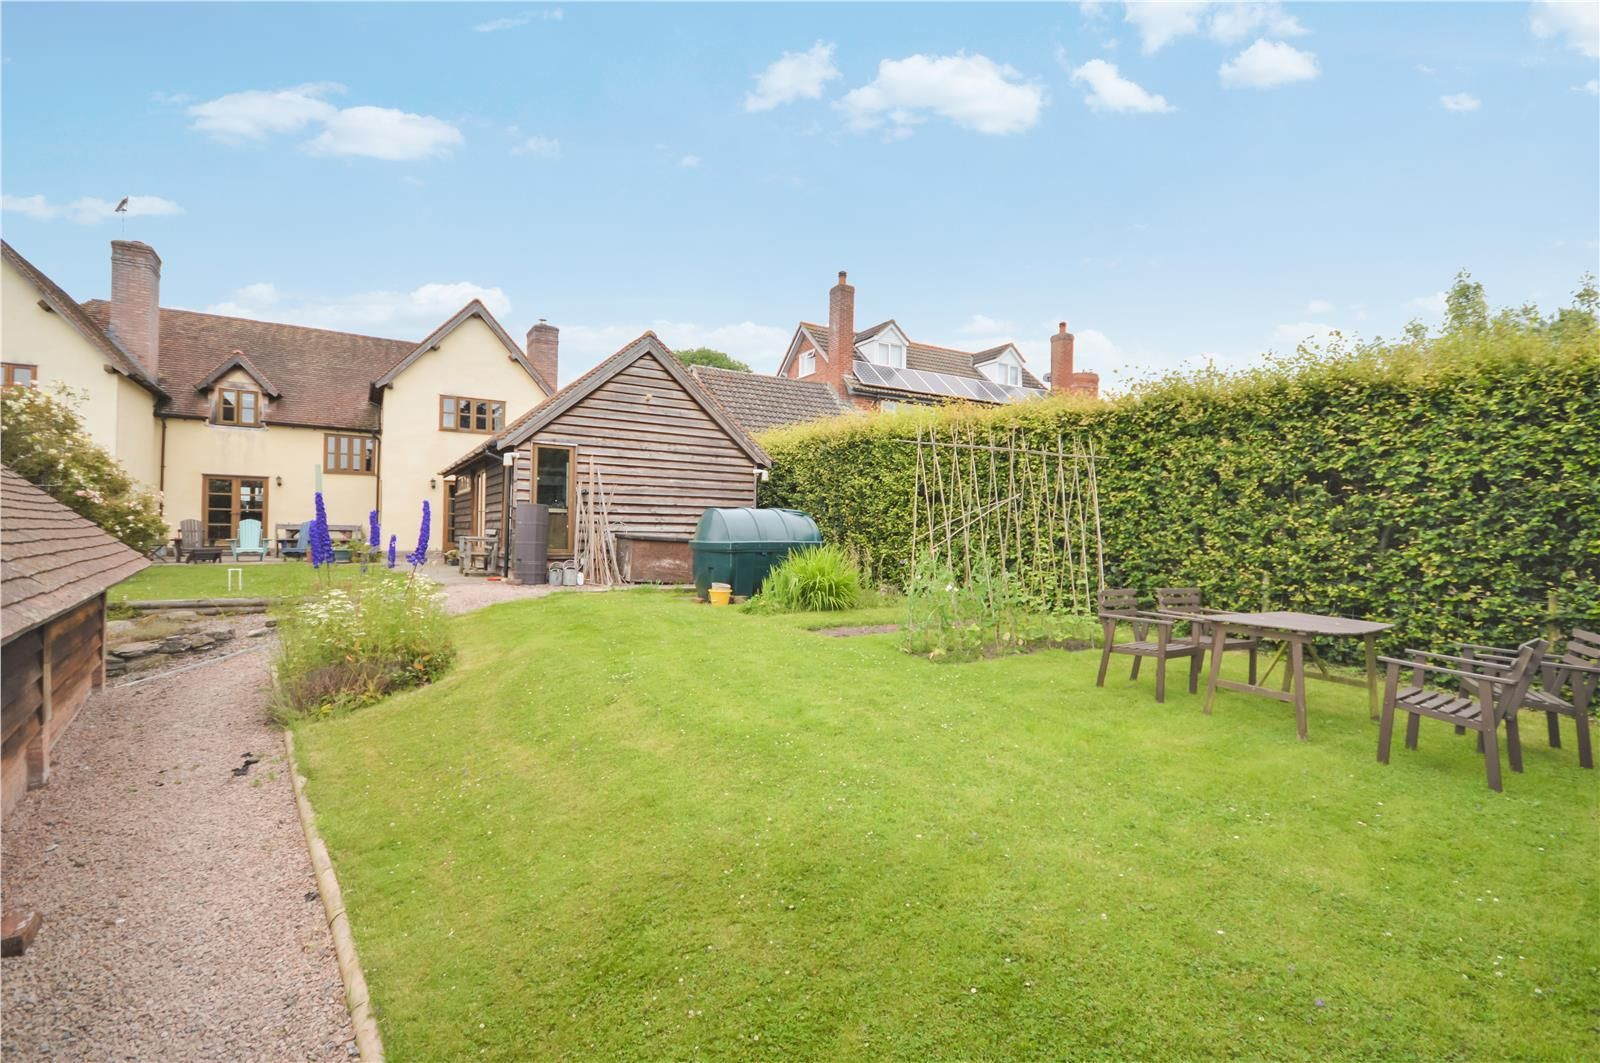 4 bed semi-detached to rent in Weobley  - Property Image 15